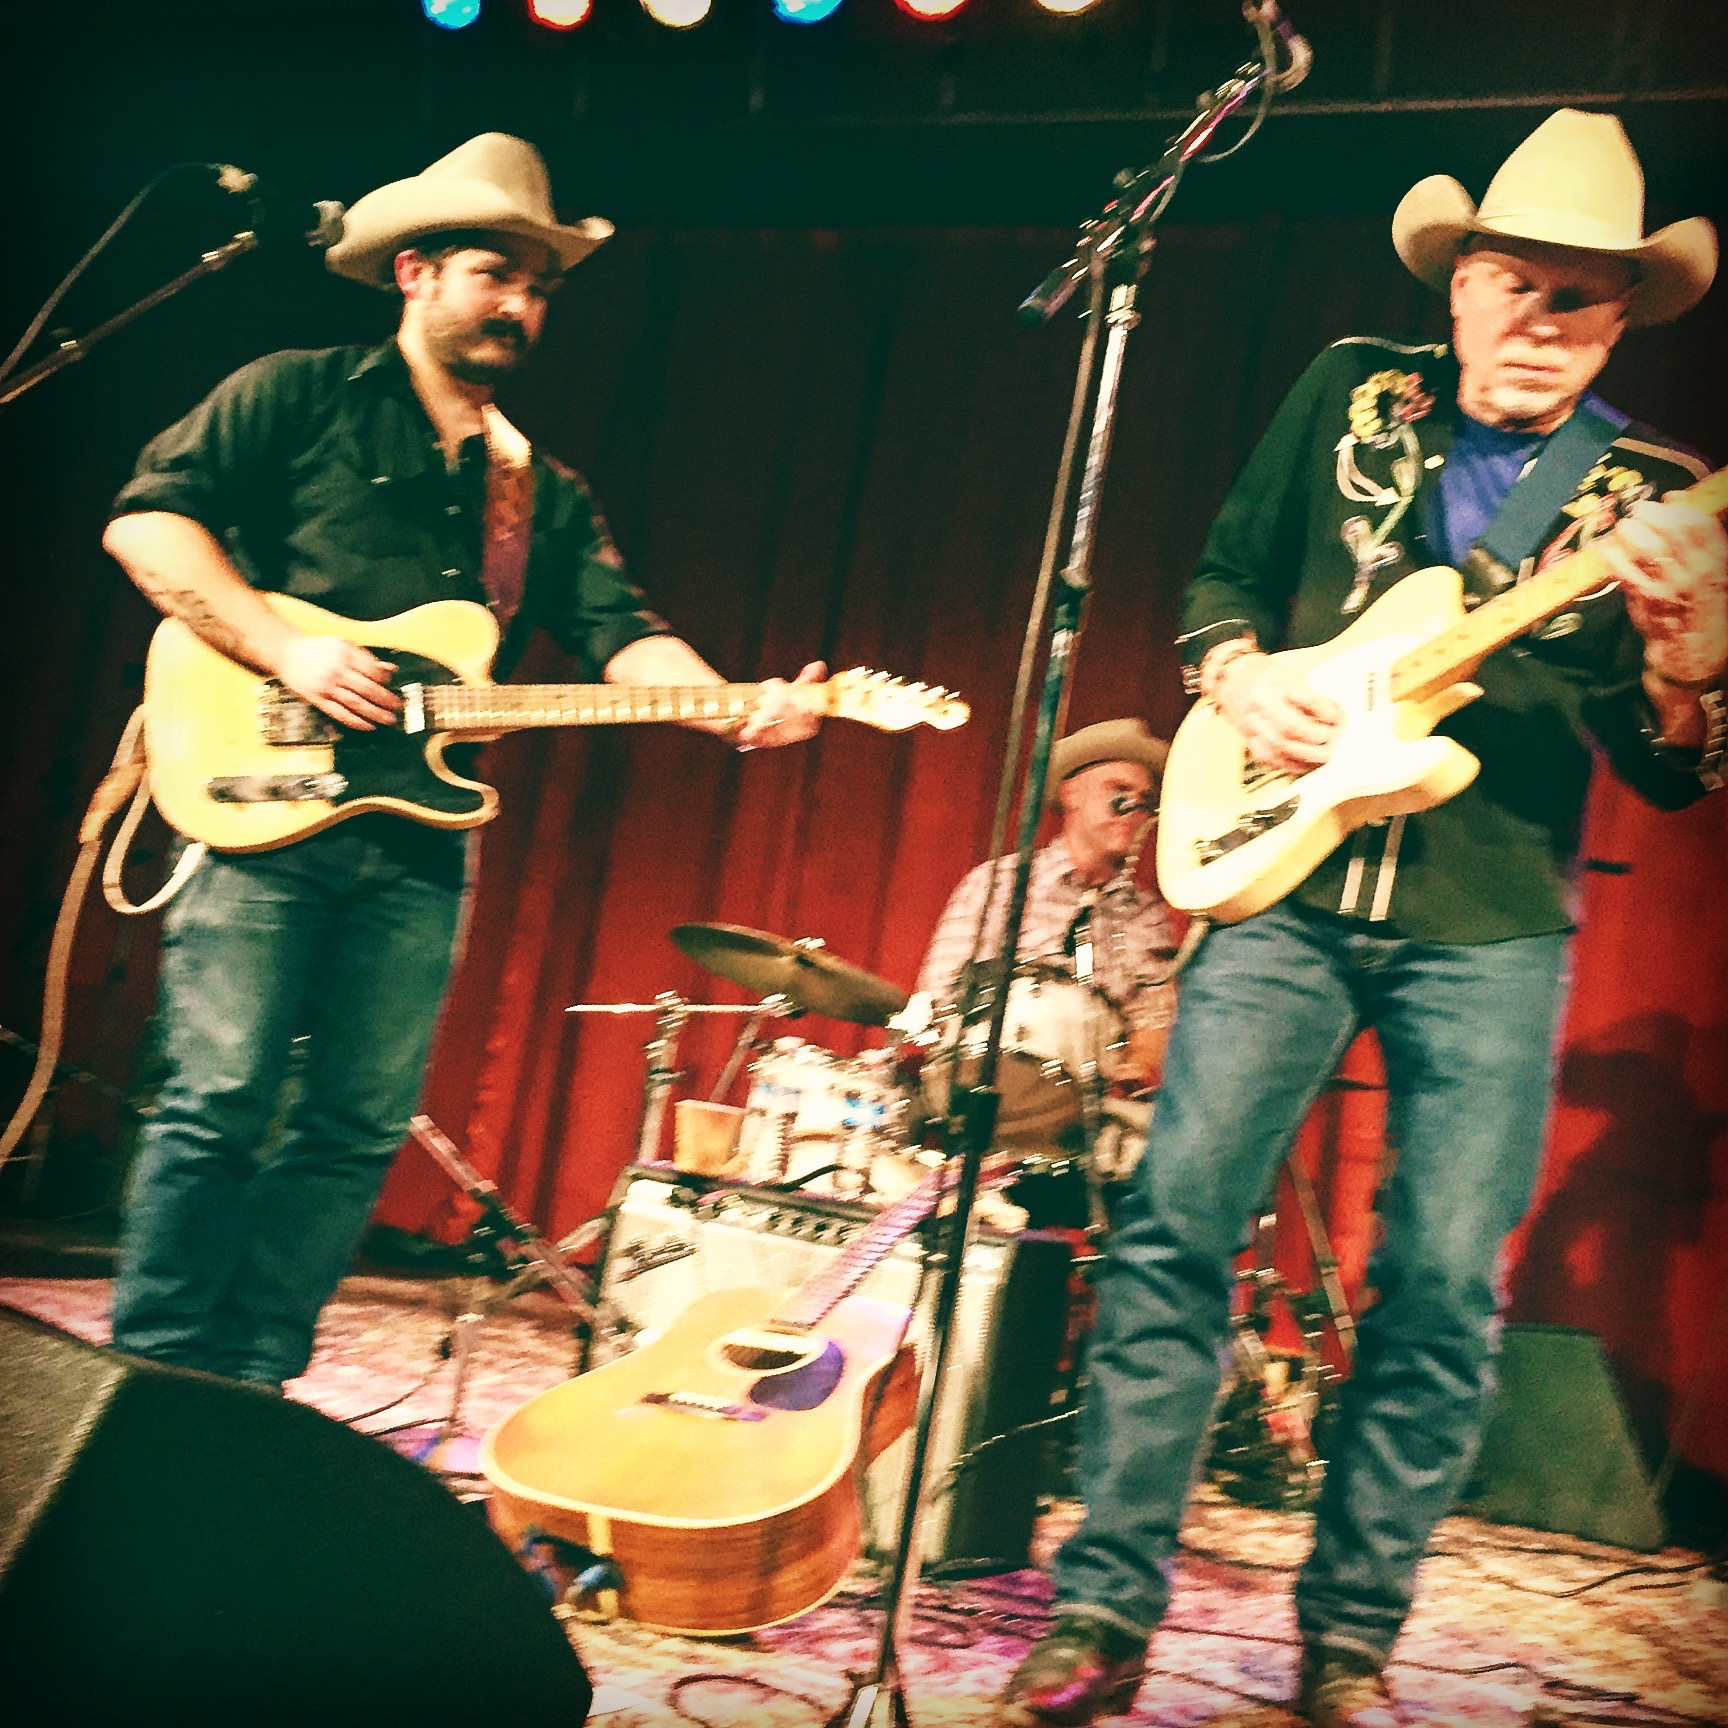 Cahalen Morrison's country band, Western Centuries, in action. Photo by Zoë Léger, age 7.